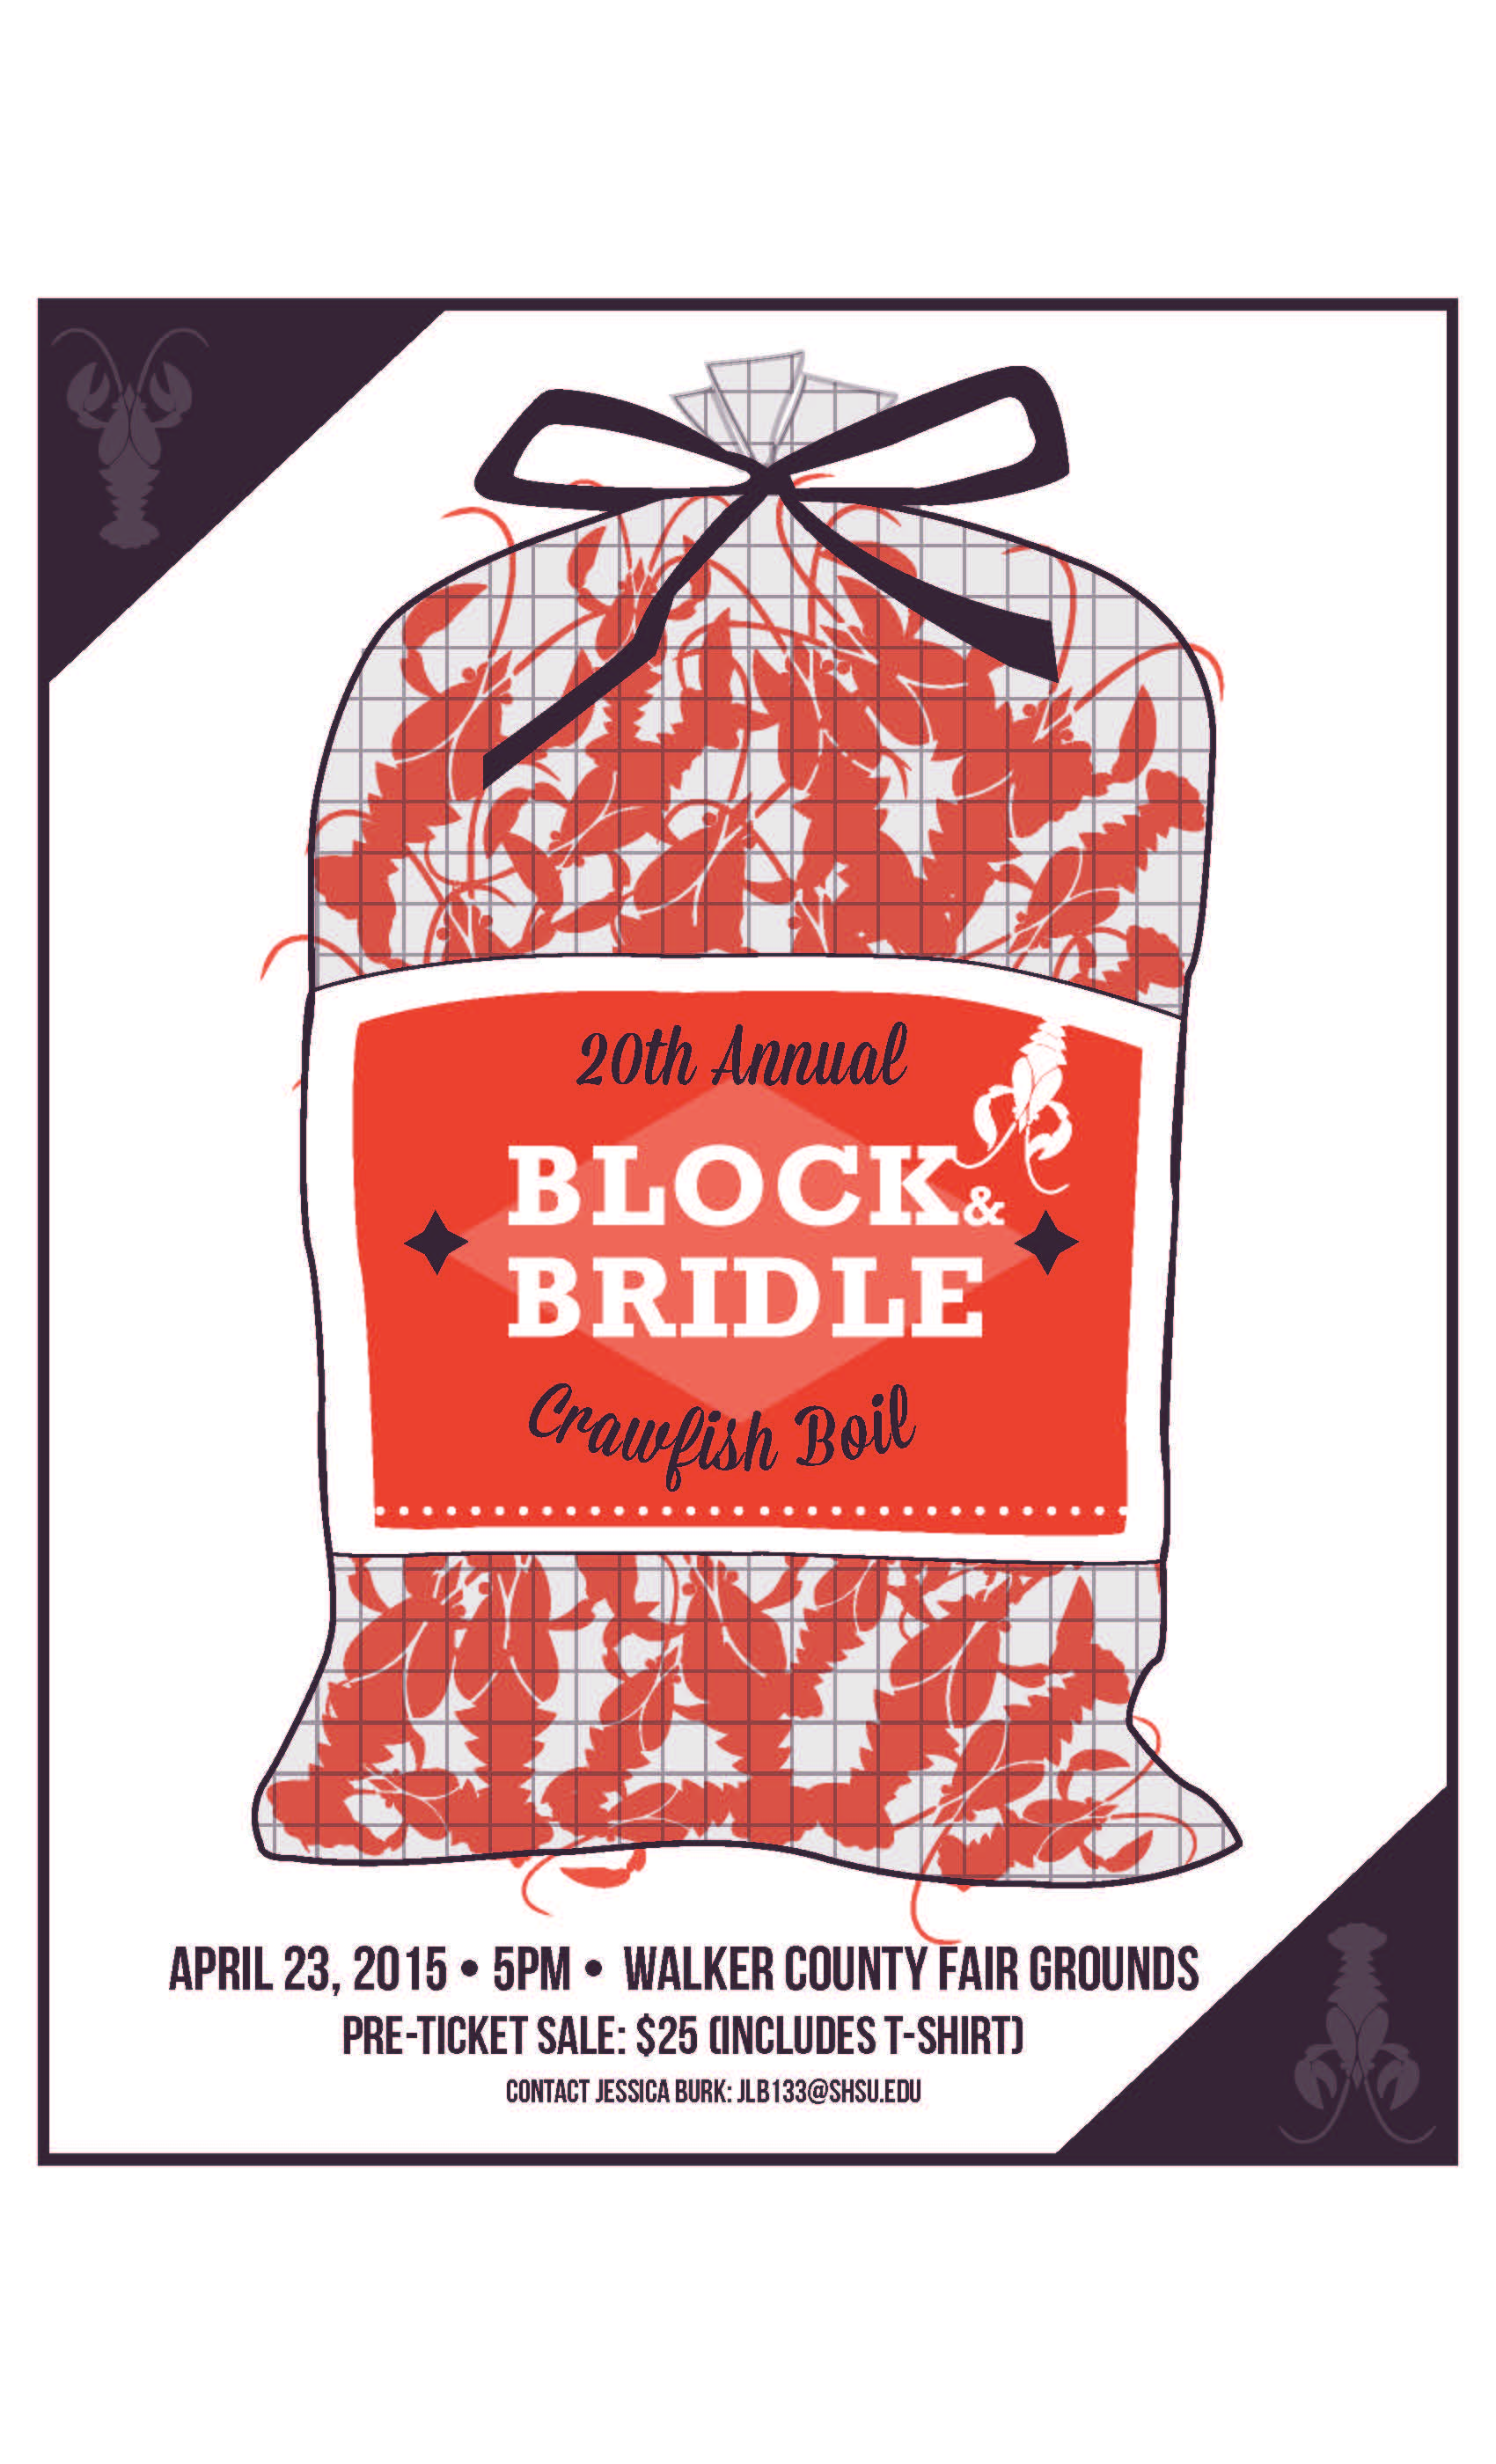 20th Annual Block & Bridle Crawfish Boil